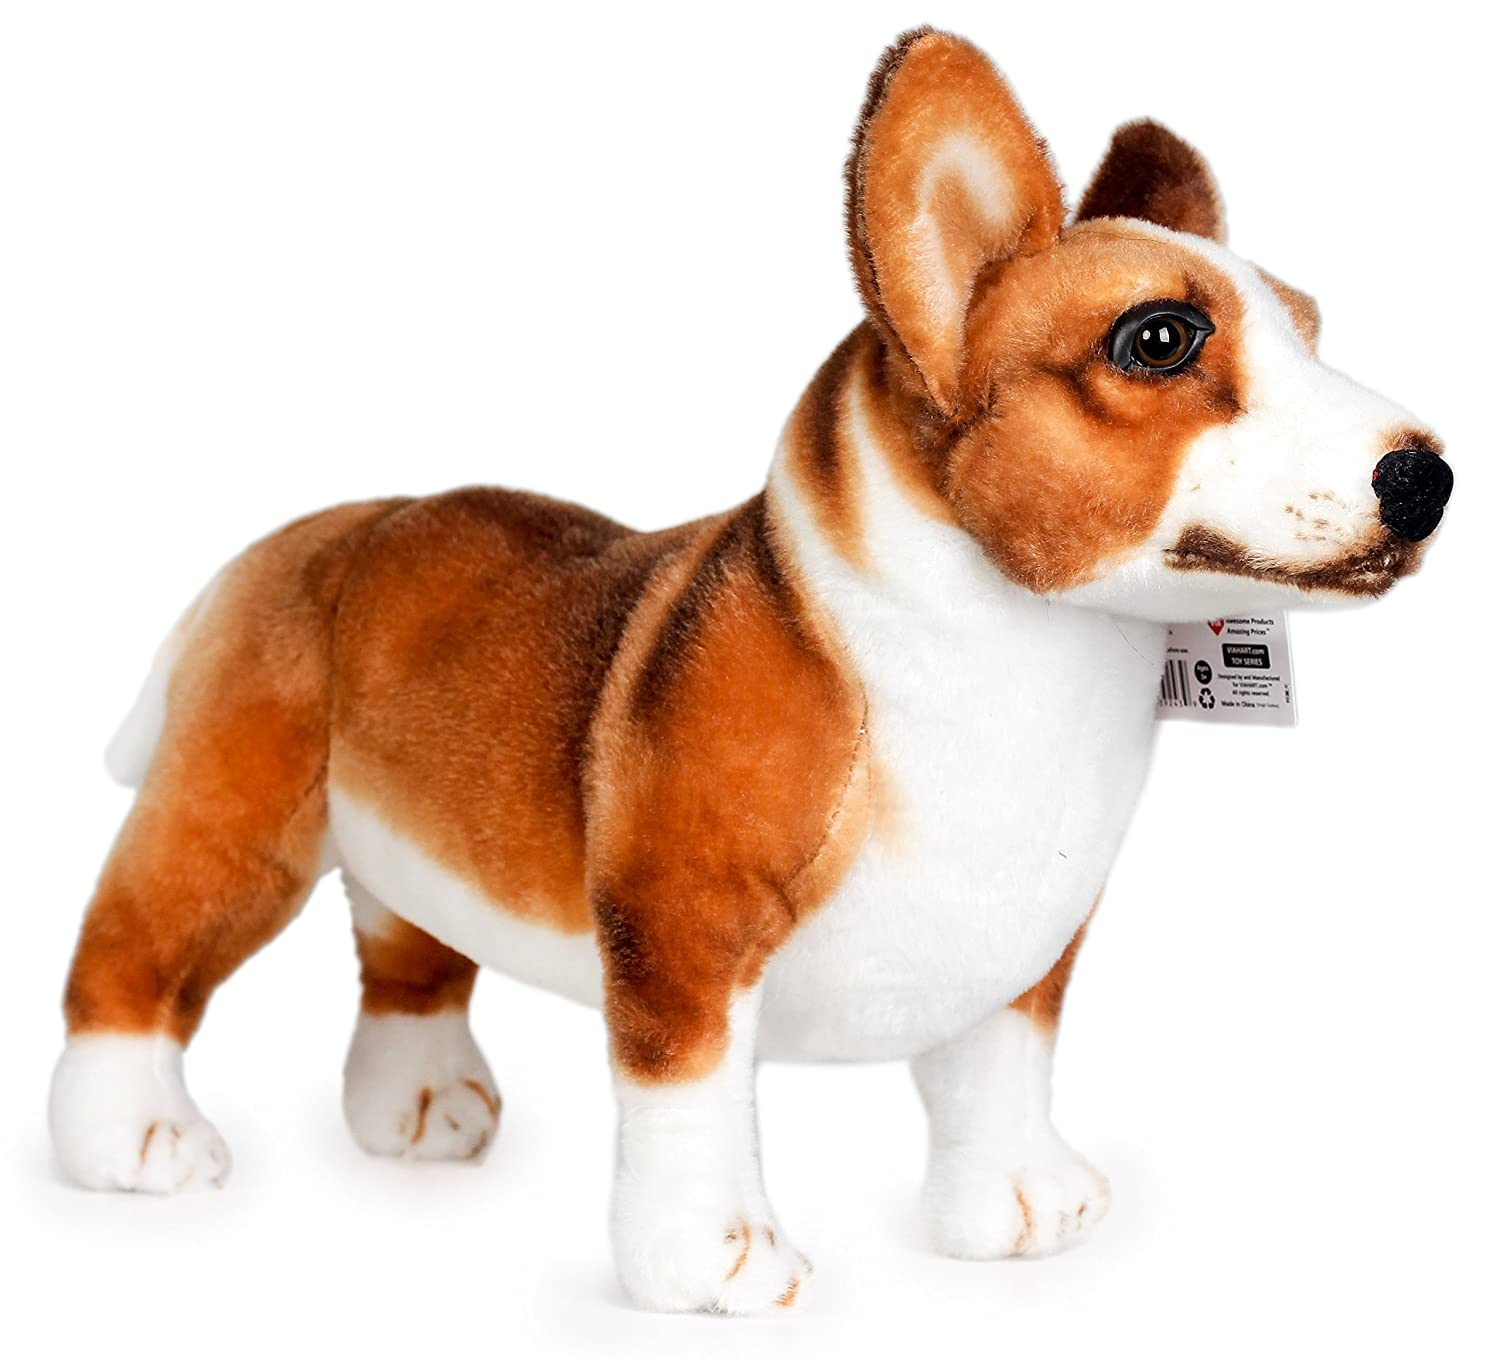 Amazon Caerwyn the Cardigan Welsh Corgi